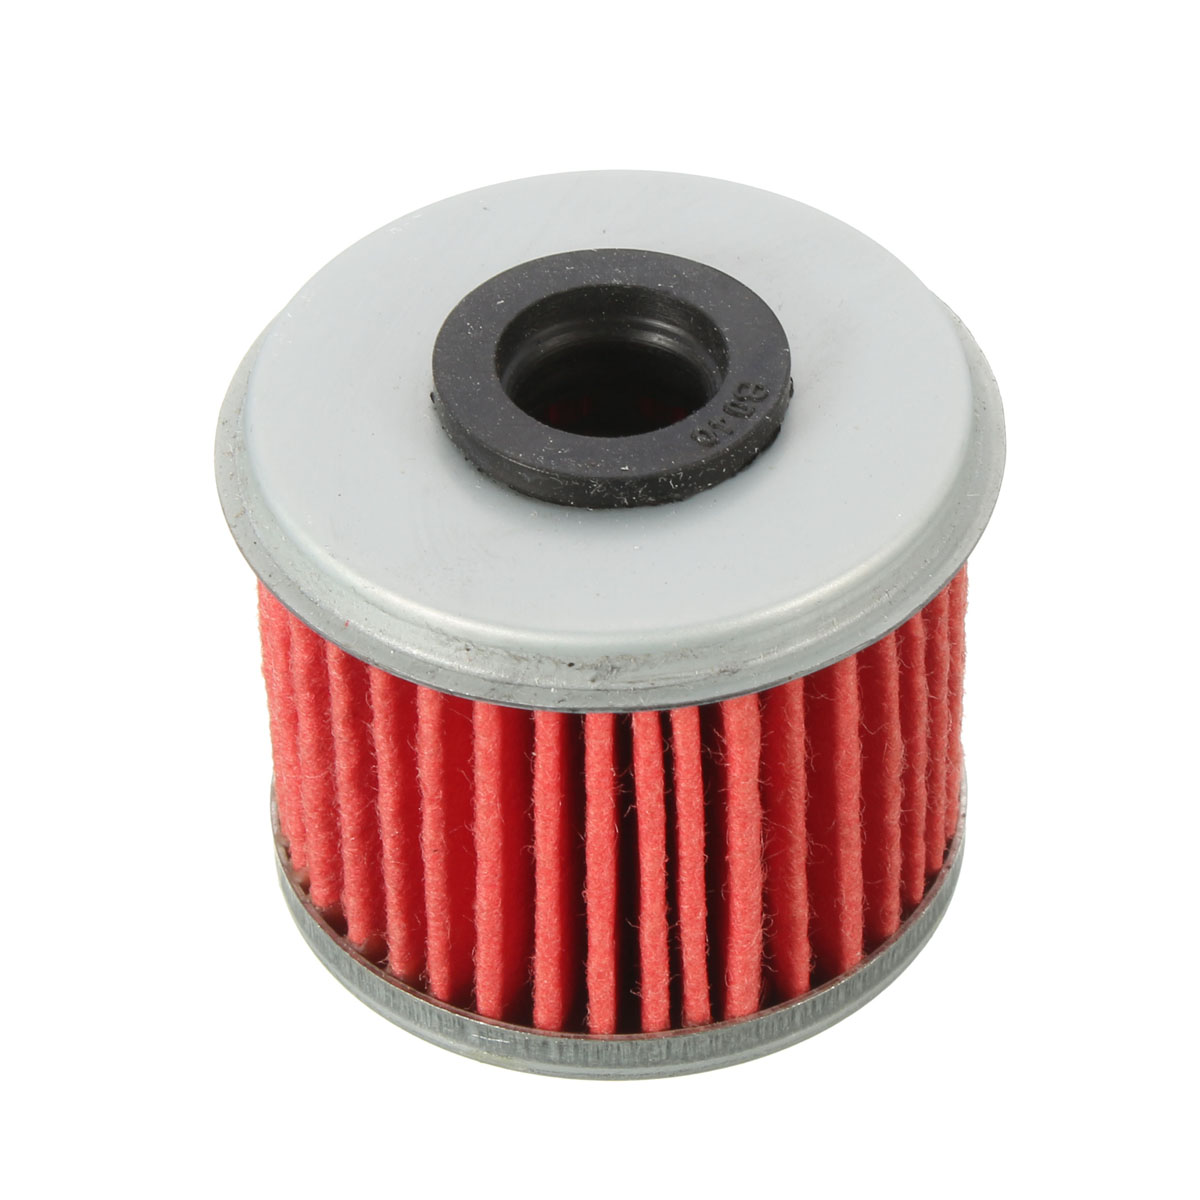 Engine Oil Filter Cleaner For Honda TRX450R CRF250X CRF